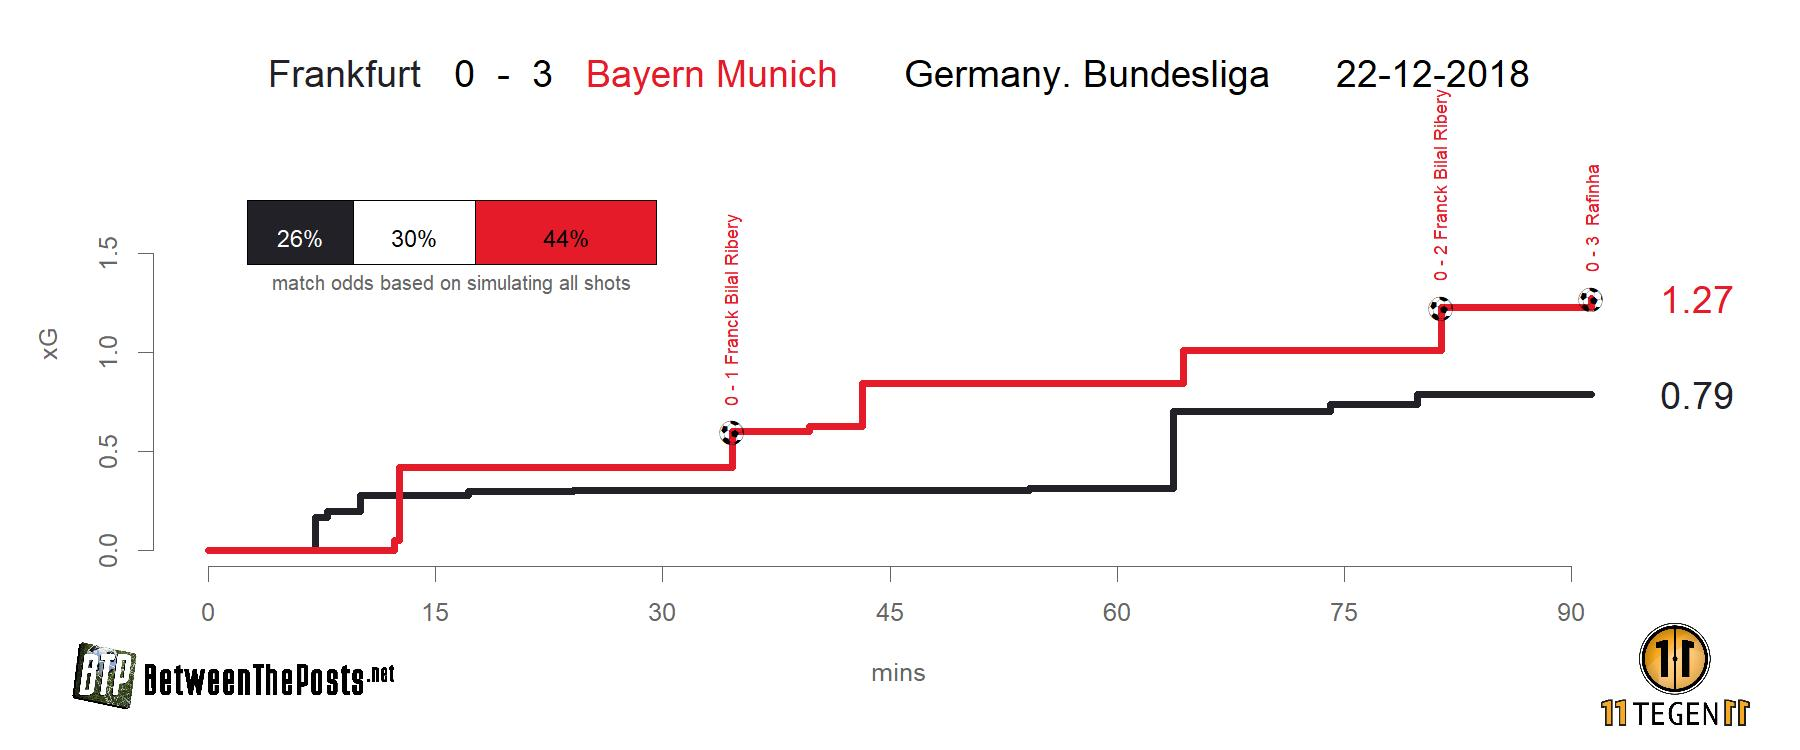 Expected goals plot Eintracht Frankfurt Bayern Munich 0-3 Bundesliga